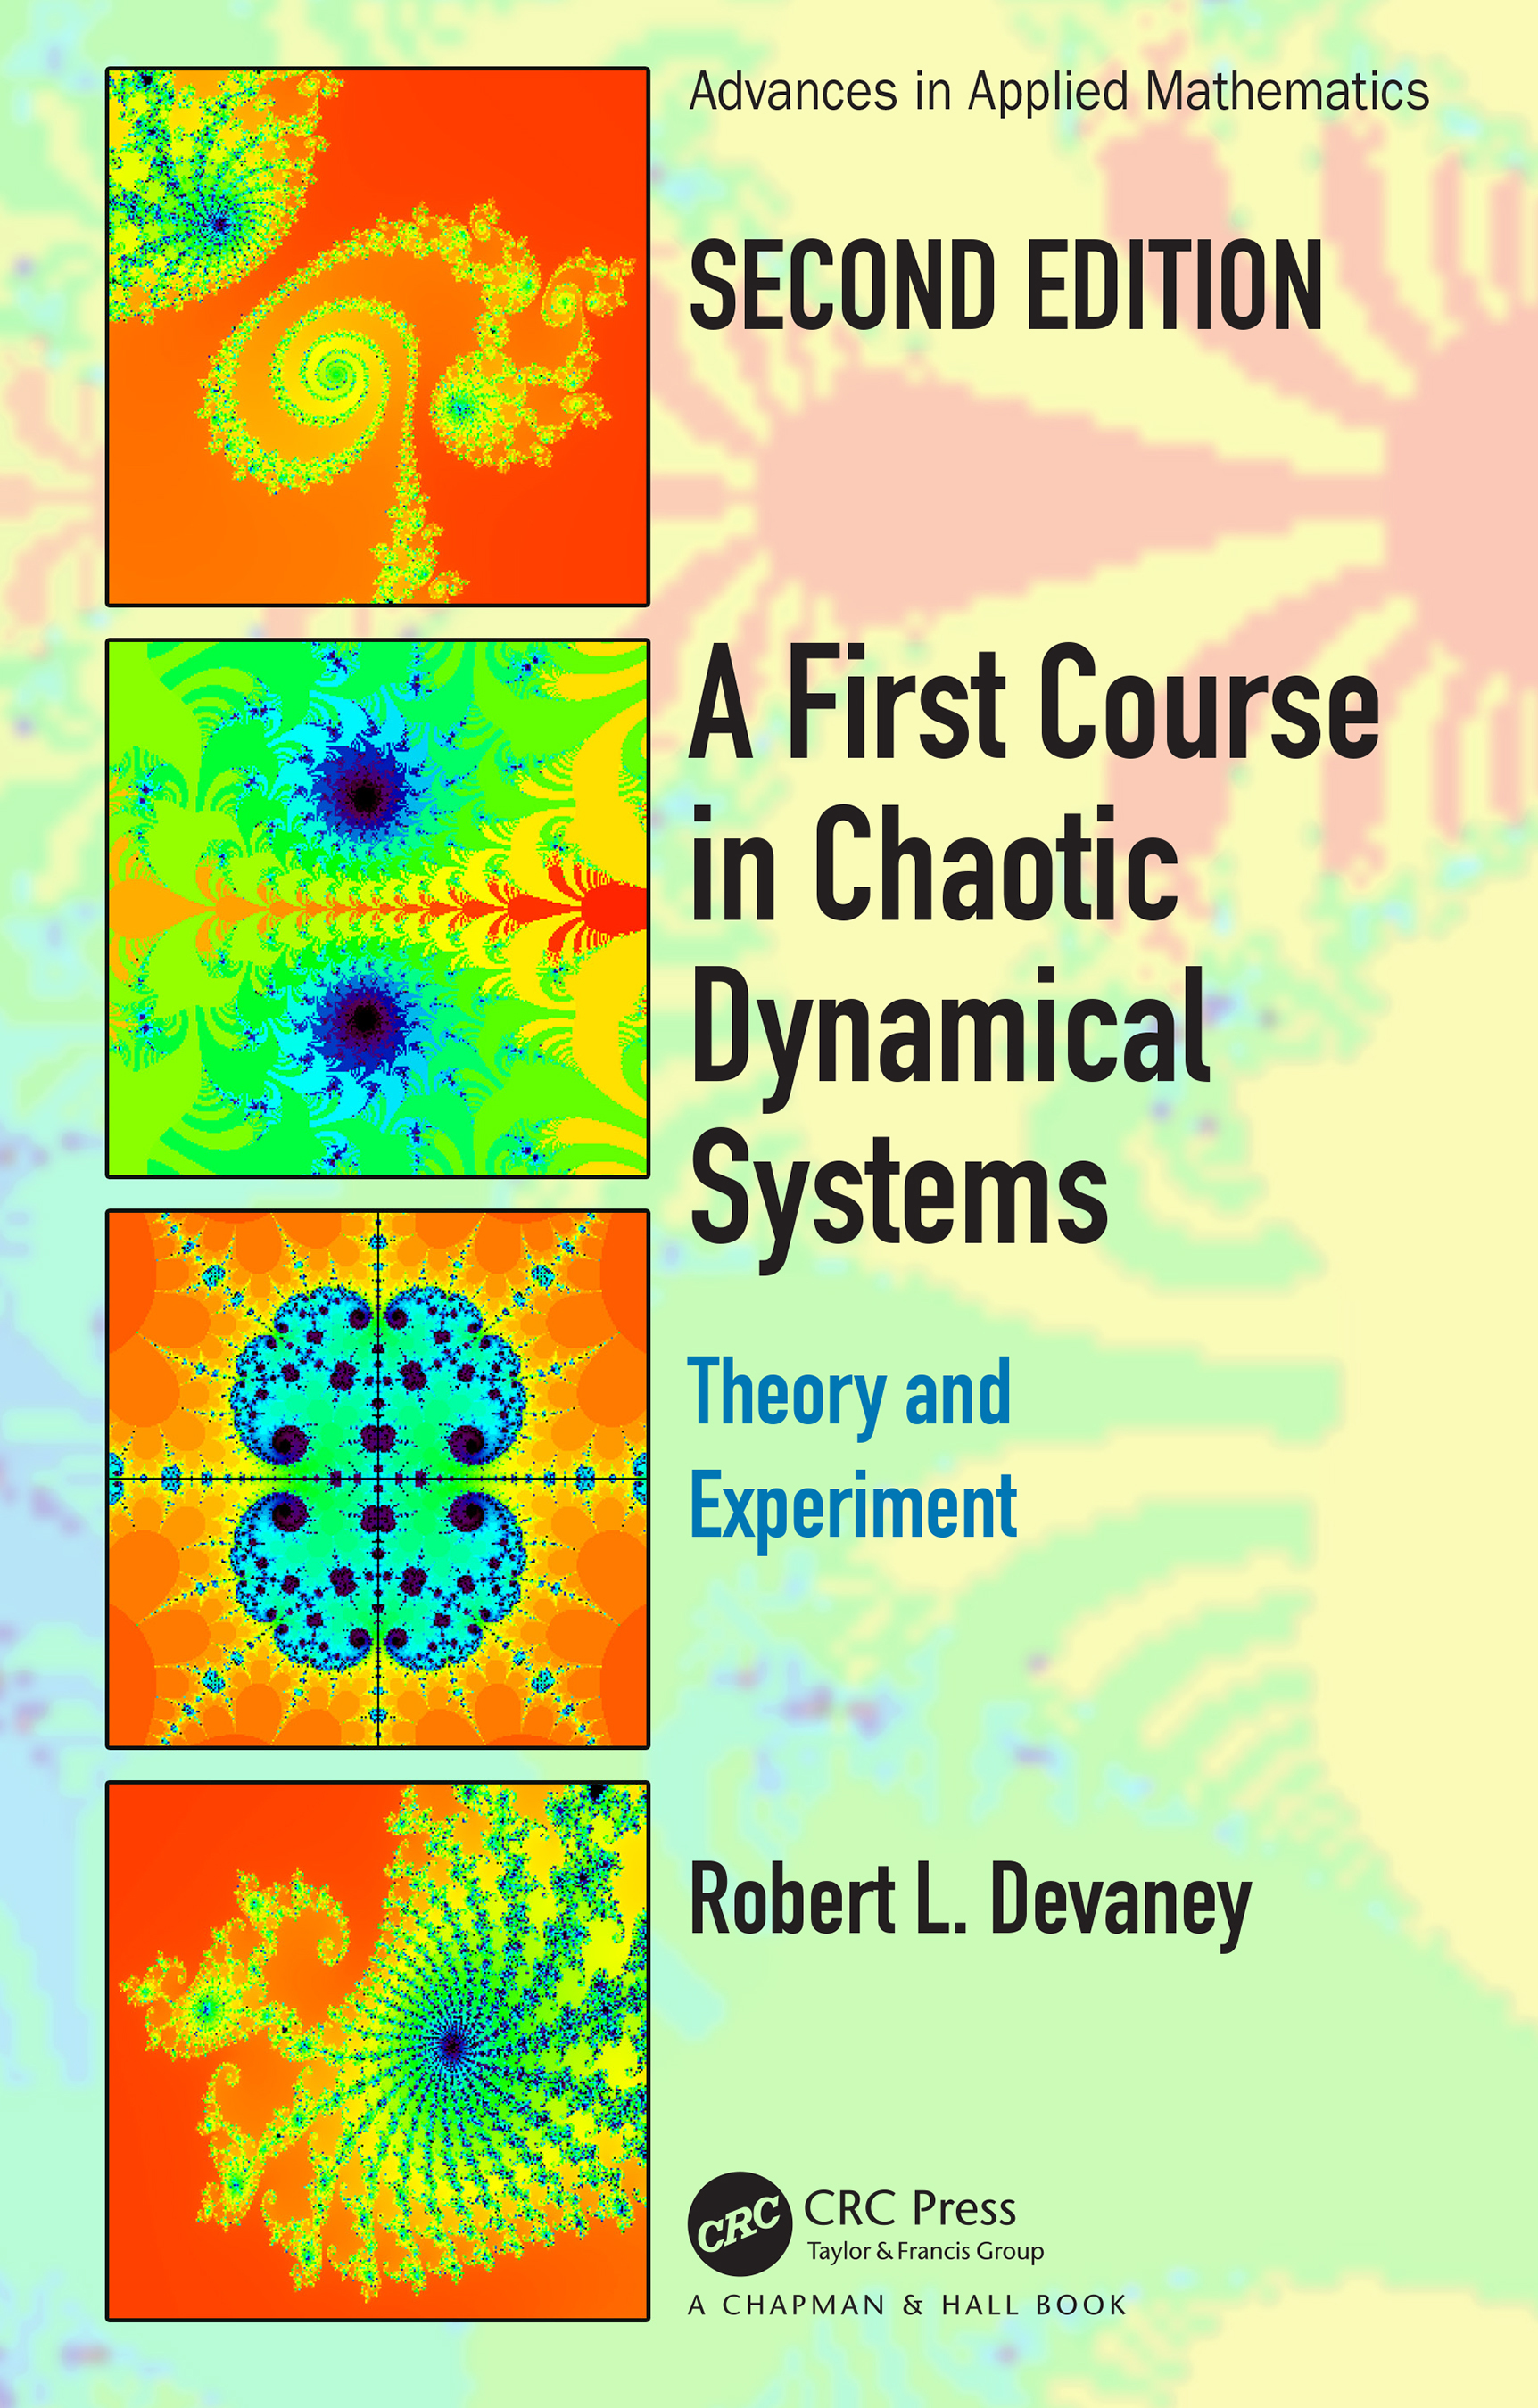 Examples of Dynamical Systems